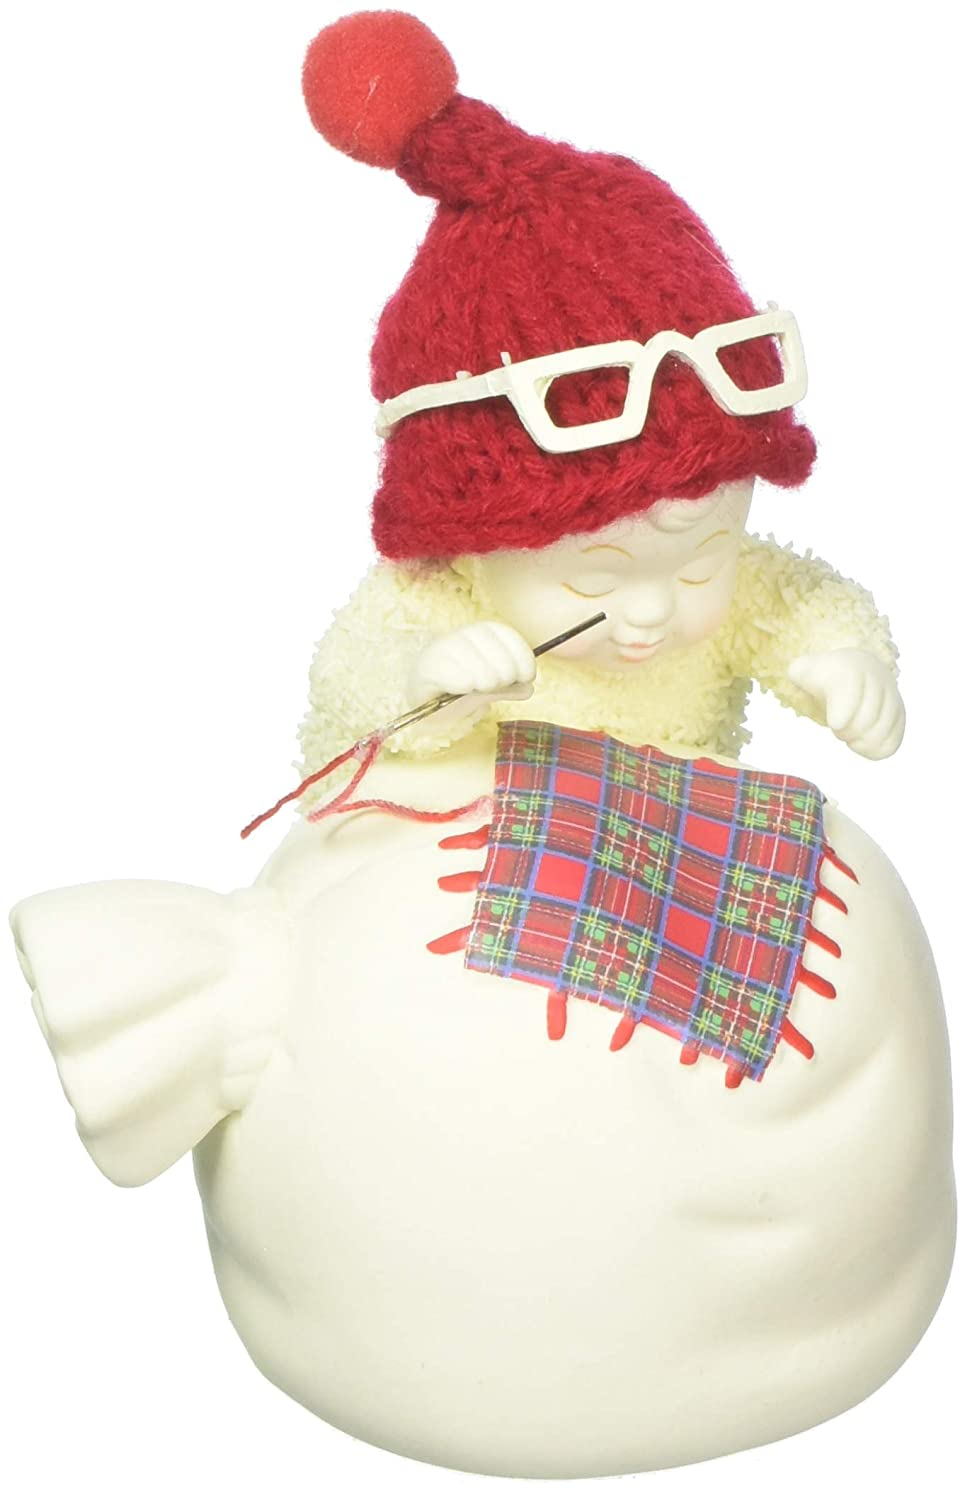 "Department 56 Snowbabies /""Mending Santa/'s Bag/"" Porcelain Figurine 3.5/"""